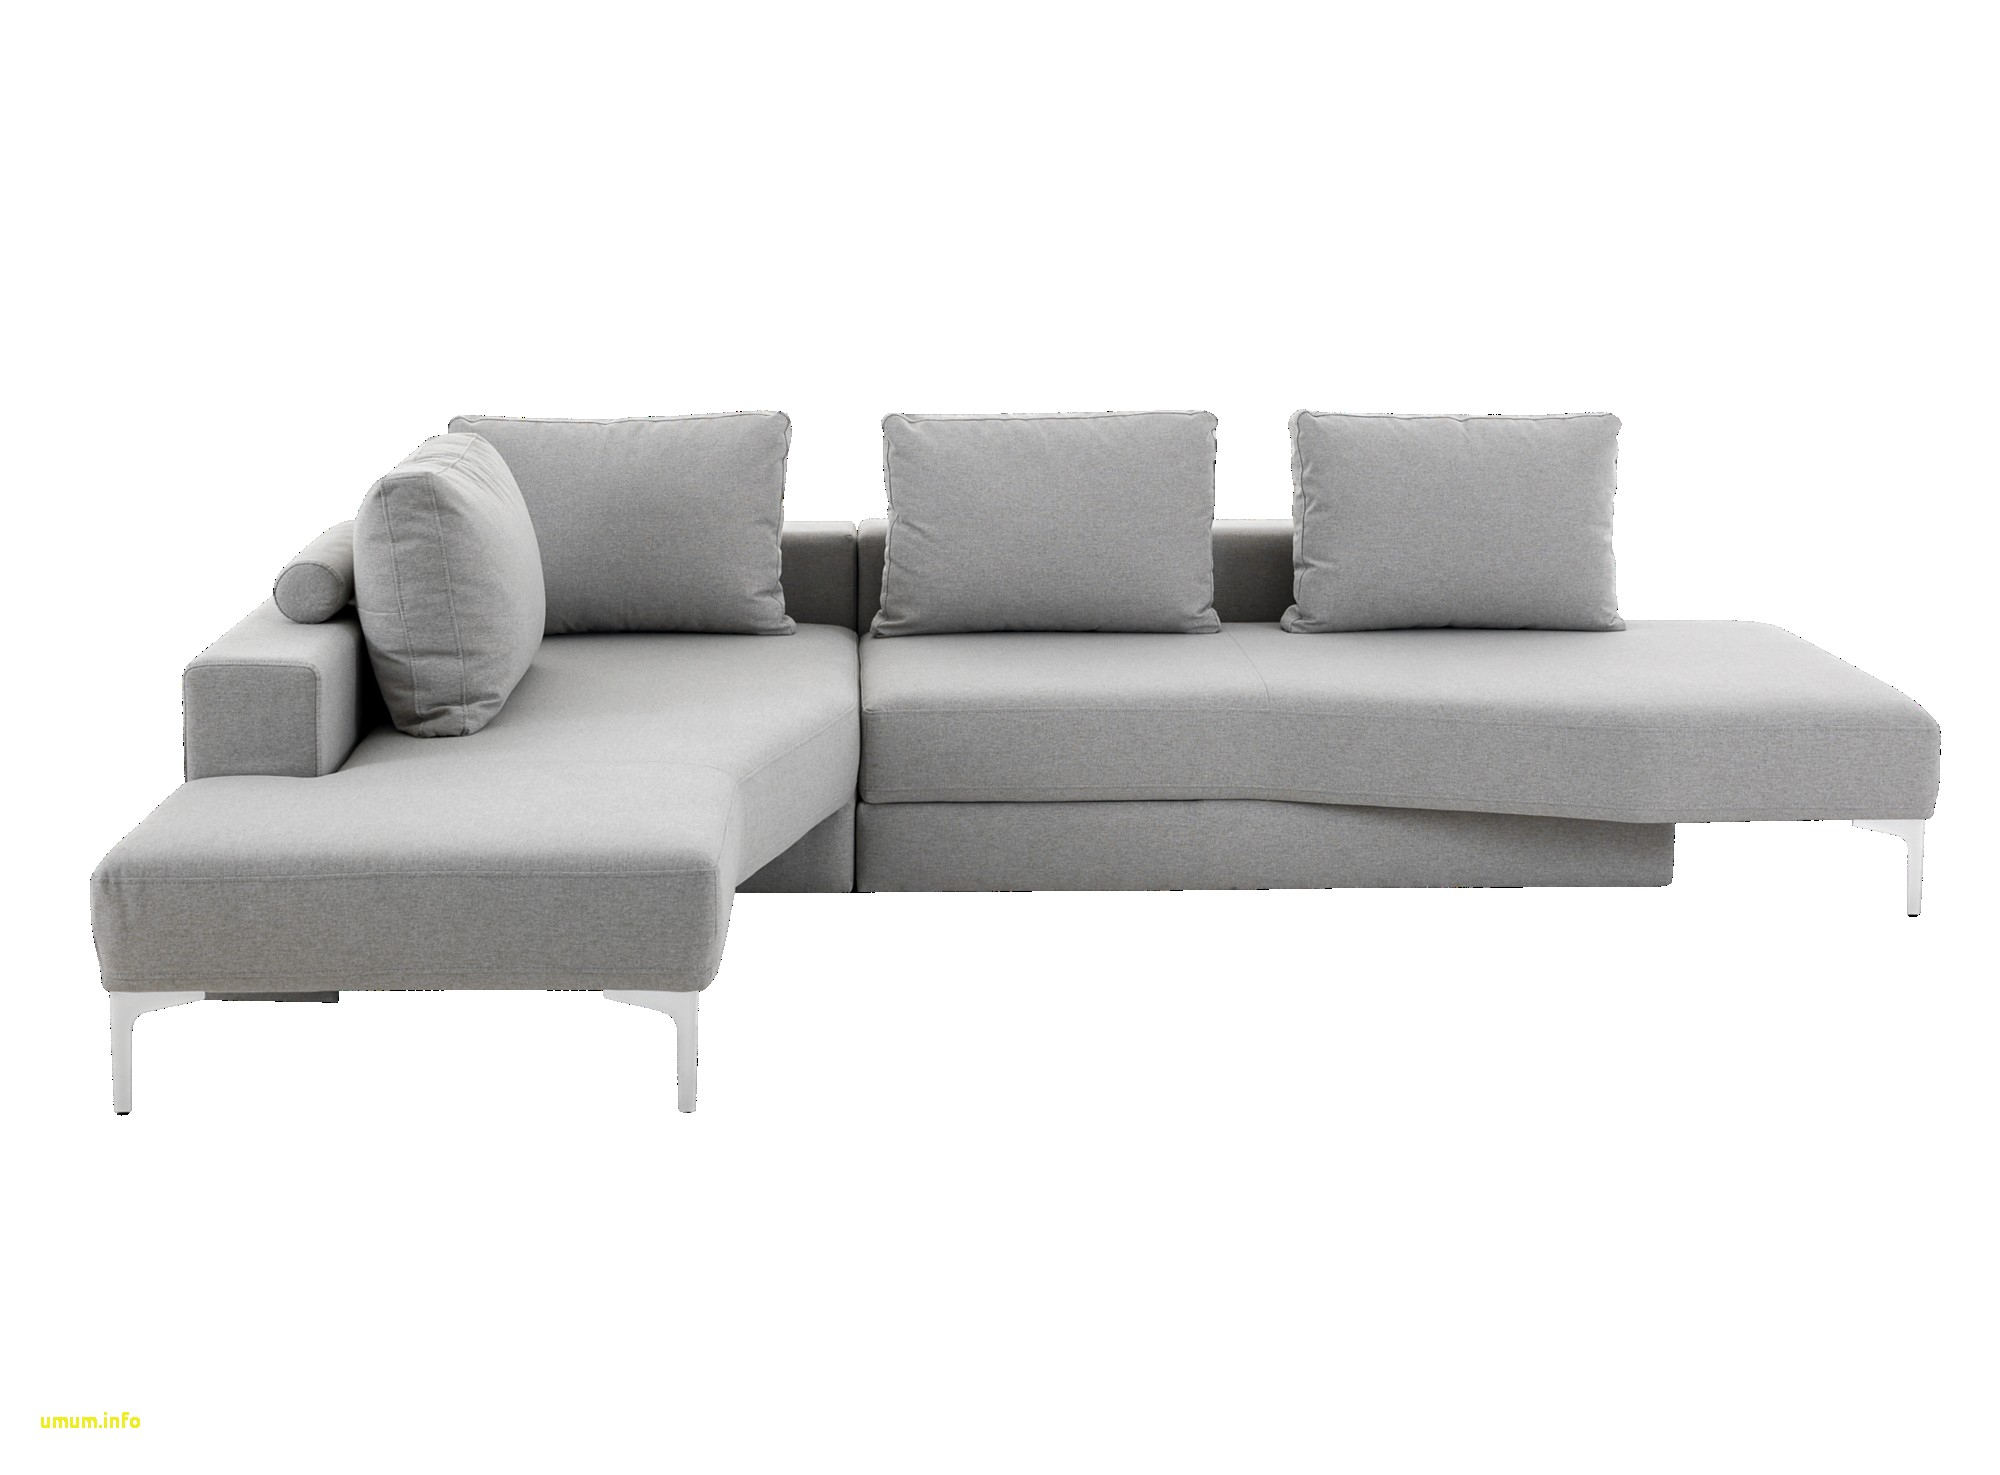 Canapé D Angle Ikea Convertible Luxe Stock Article with Tag Coussin Pour Meuble Exterieur